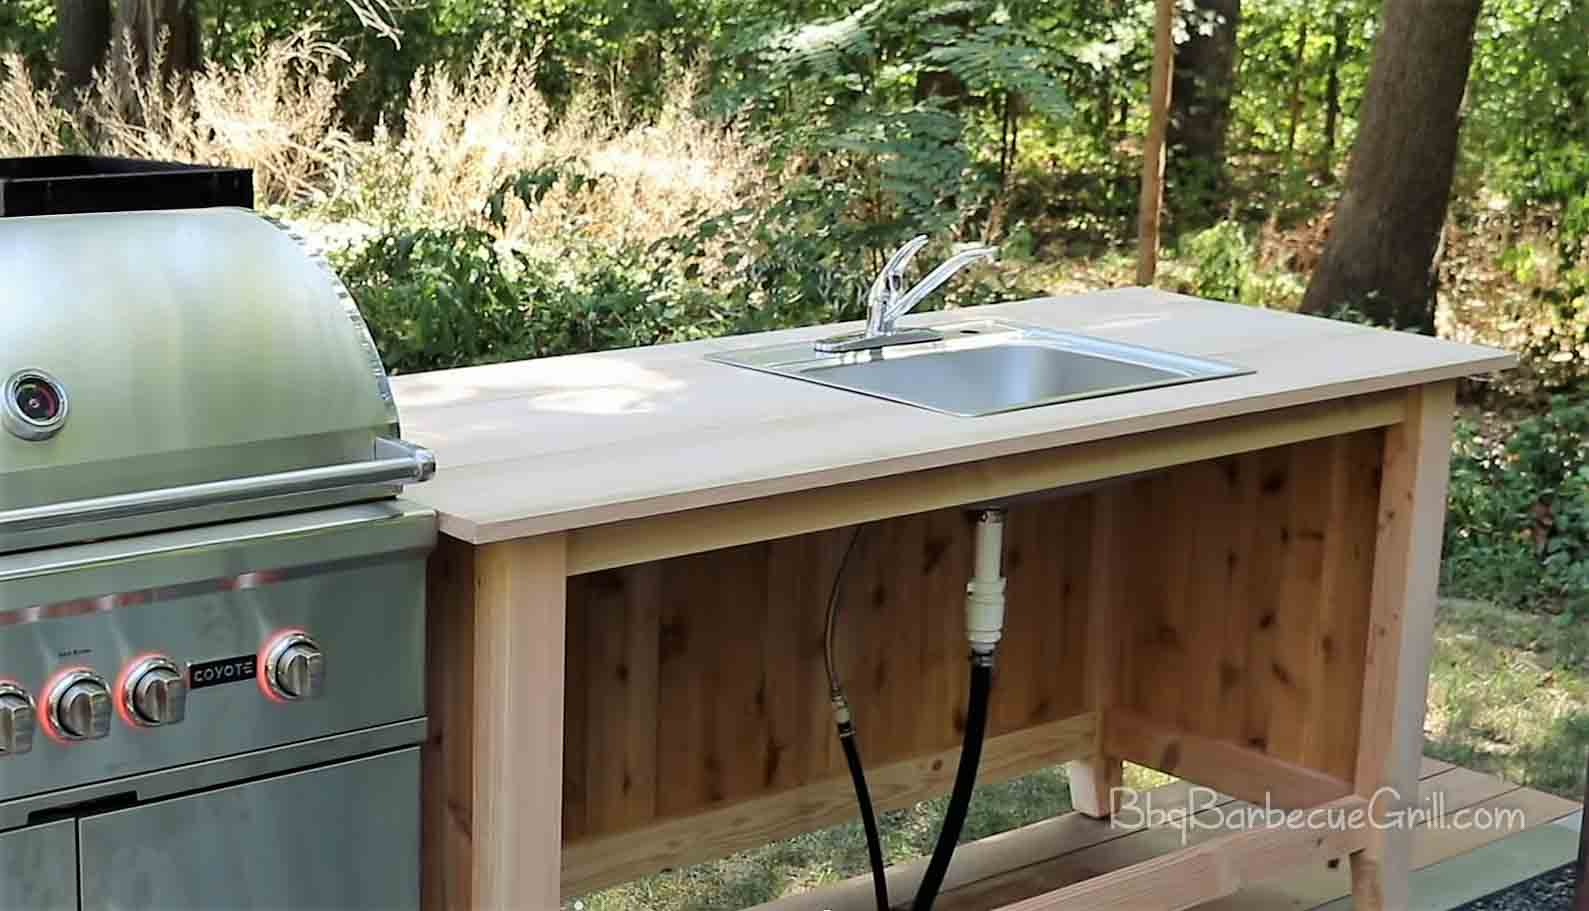 Best outdoor grill prep table